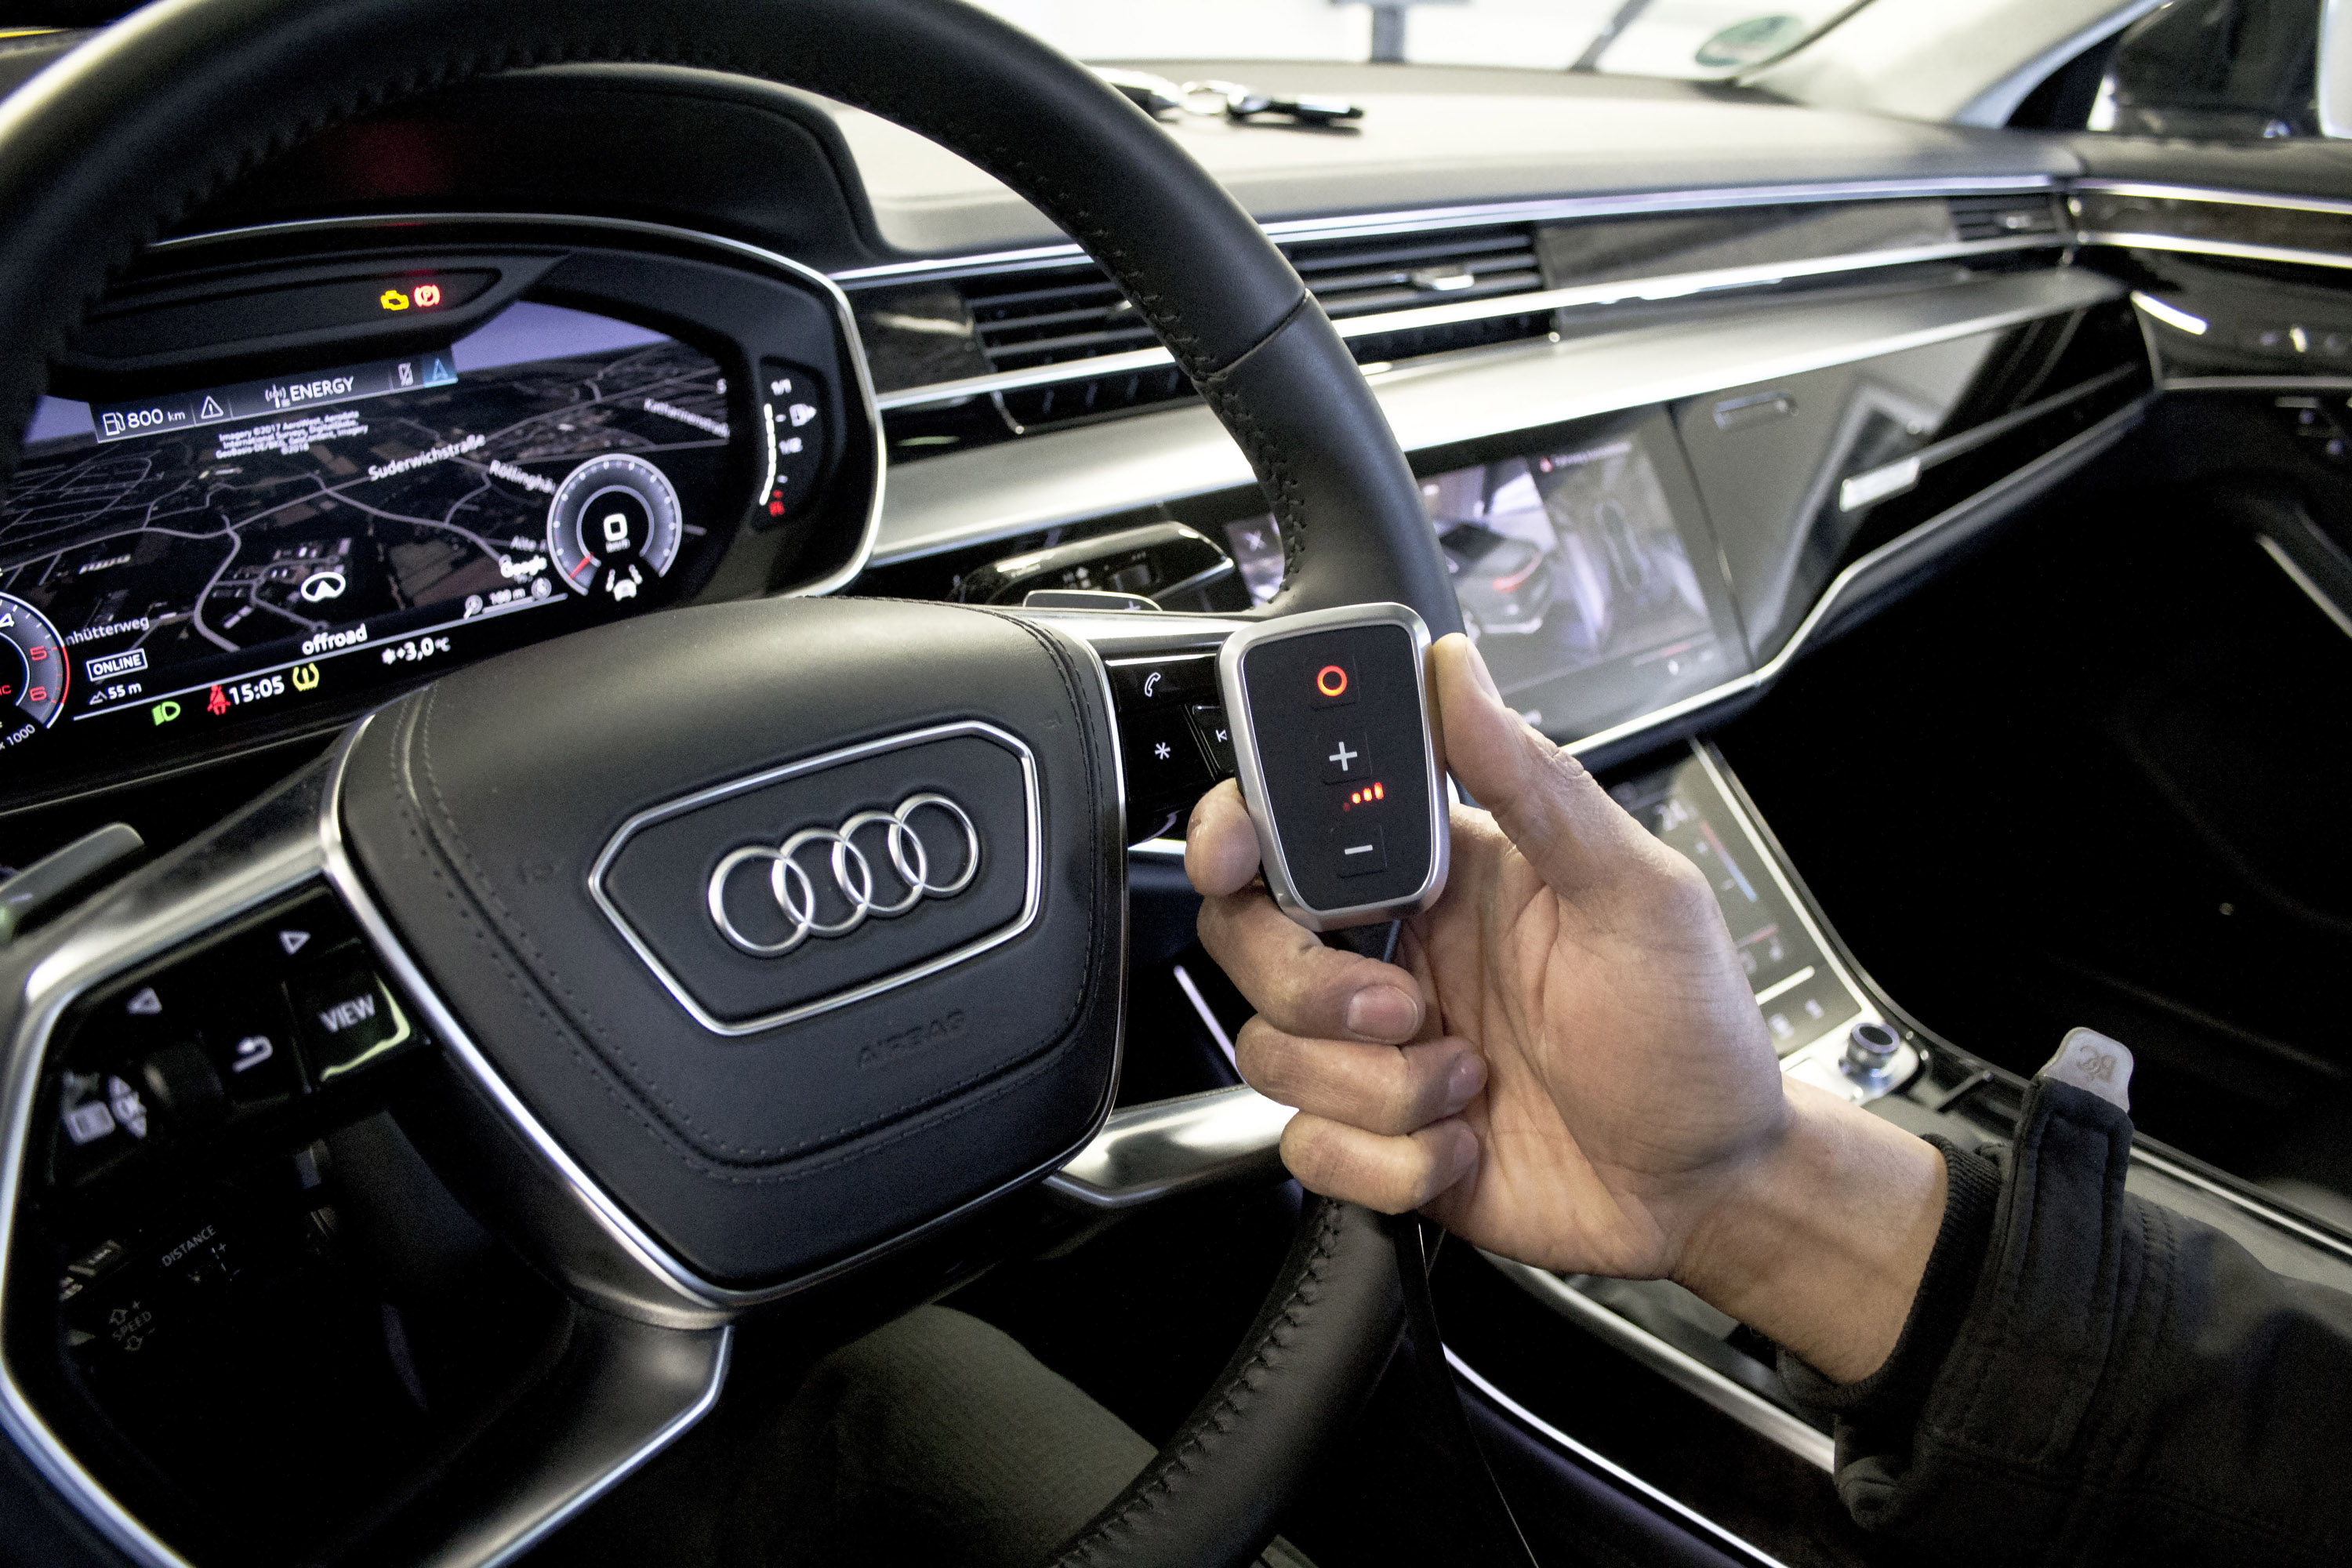 https://www.automobilesreview.com/gallery/2018-dte-systems-audi-a8/2018-dte-systems-audi-a8-05.jpg